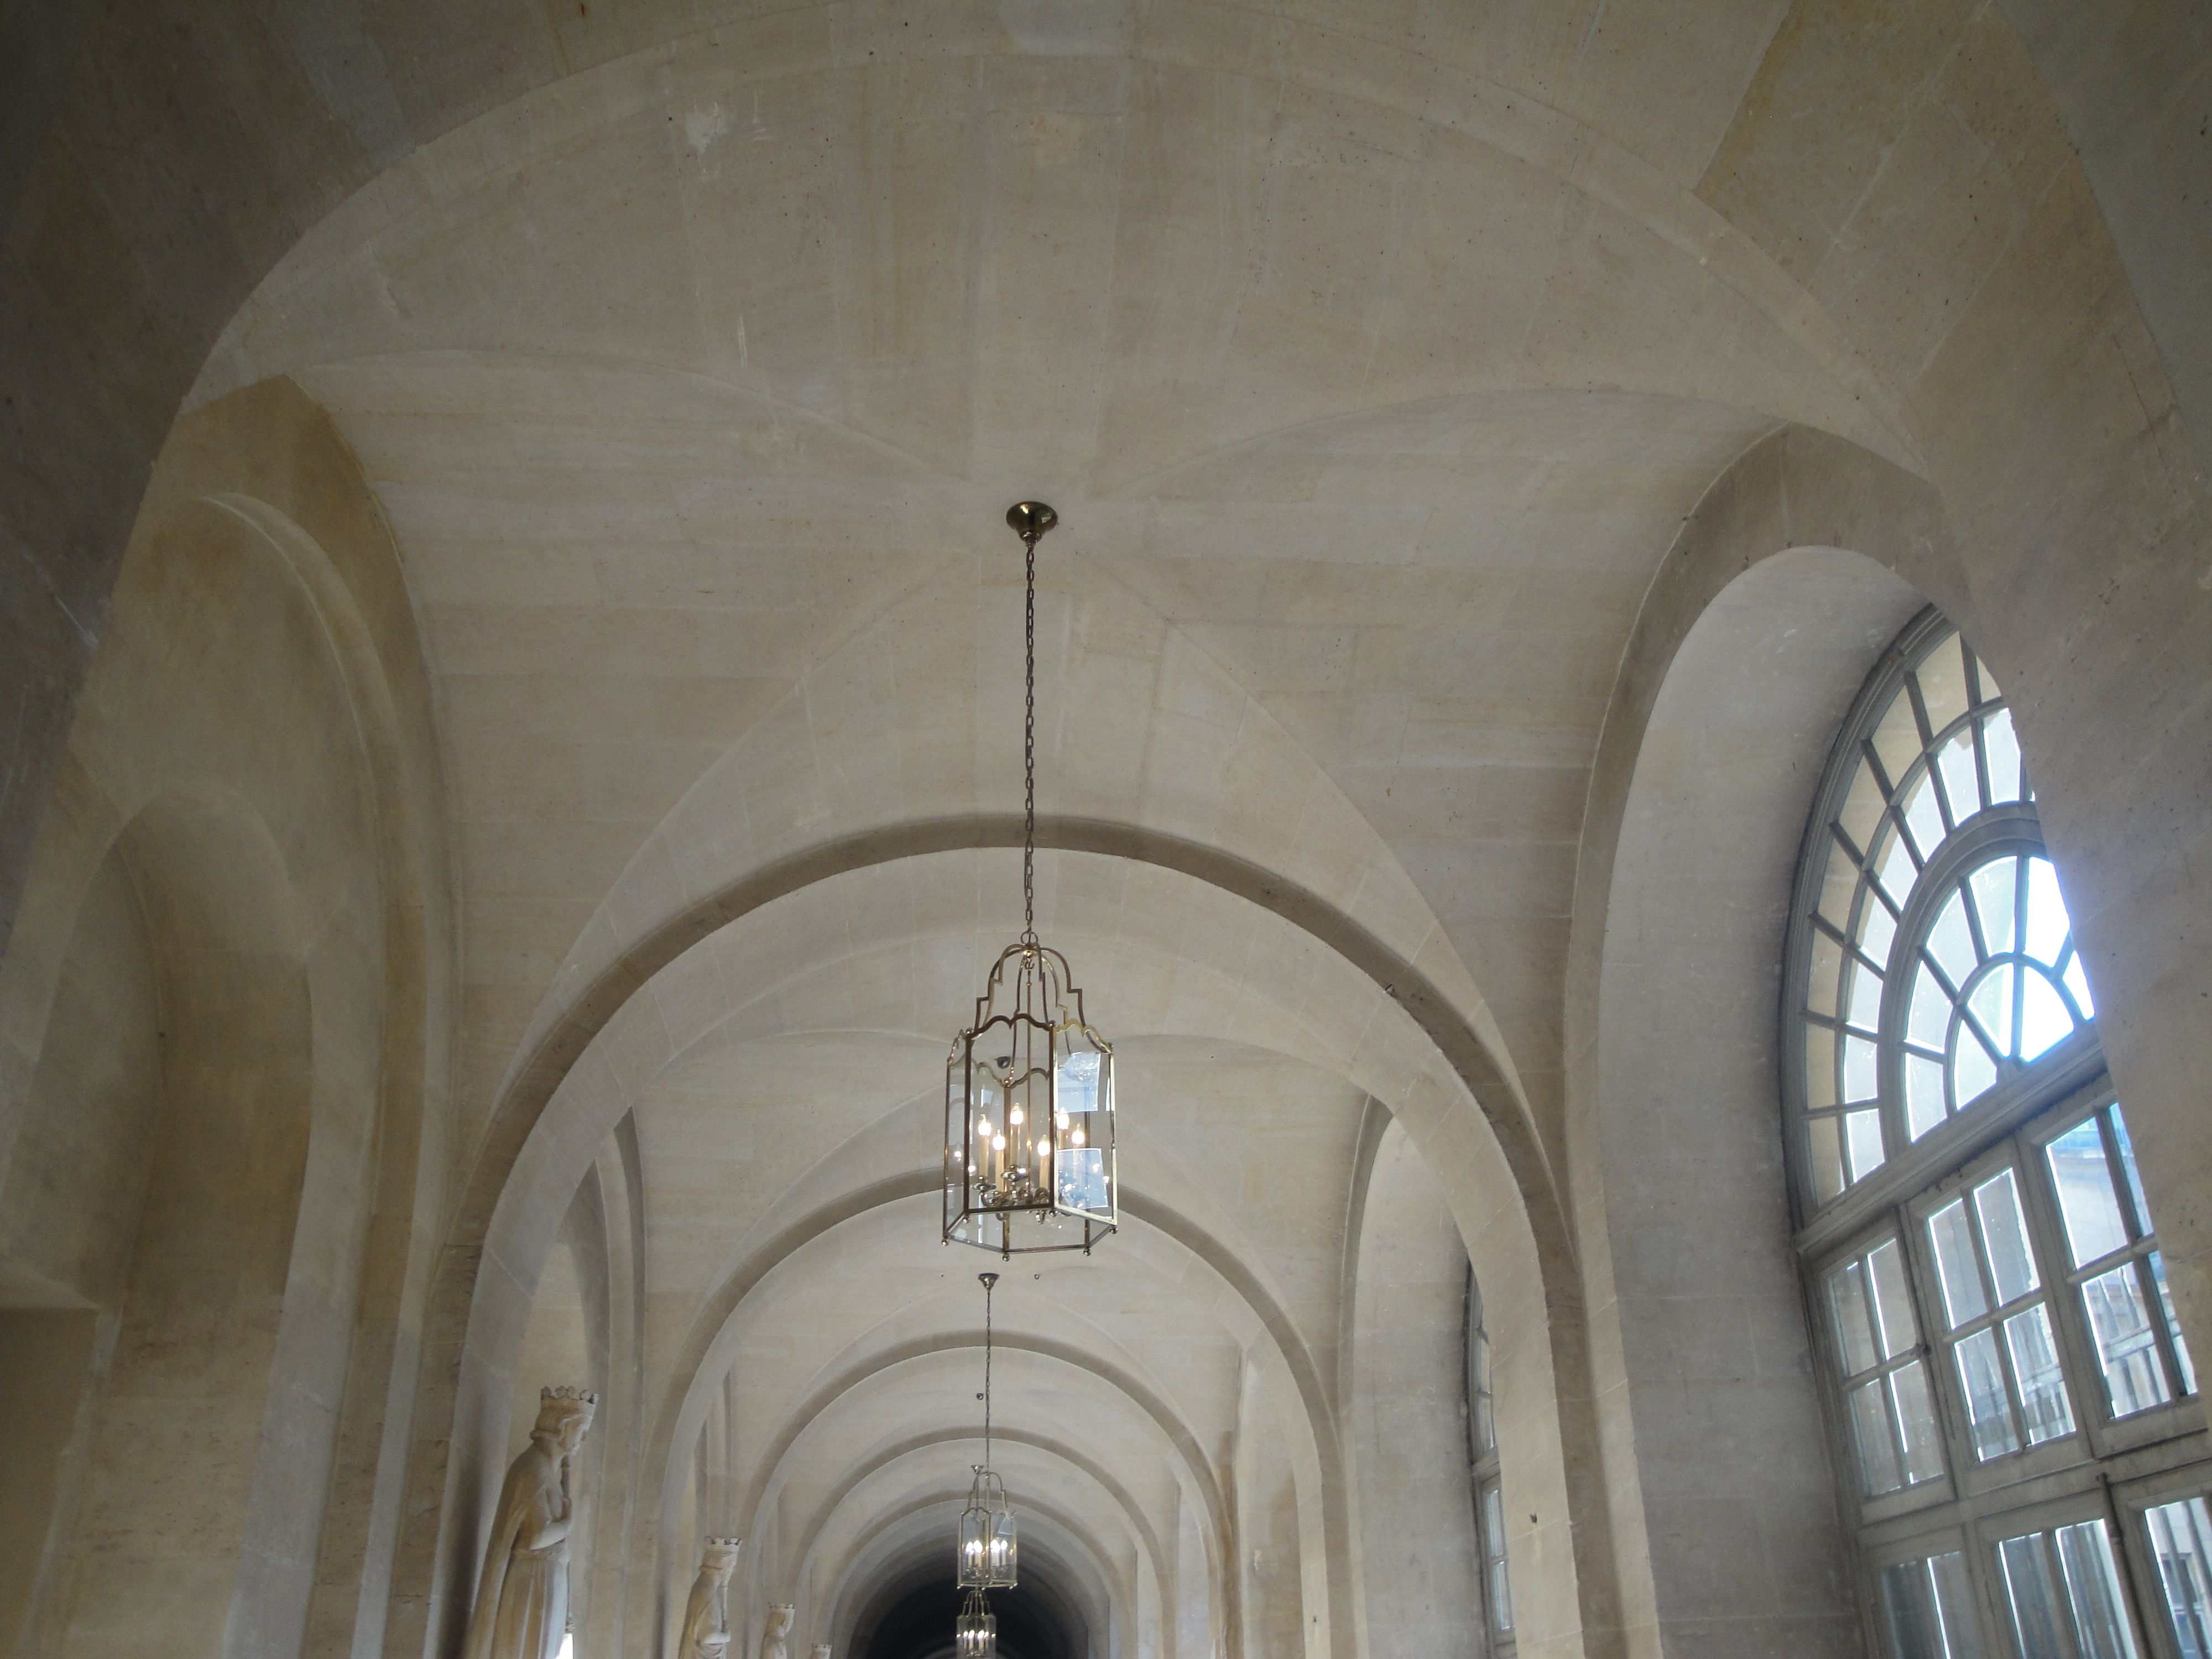 Groin vault ceiling versailles lighting pinterest for Groin vault pictures